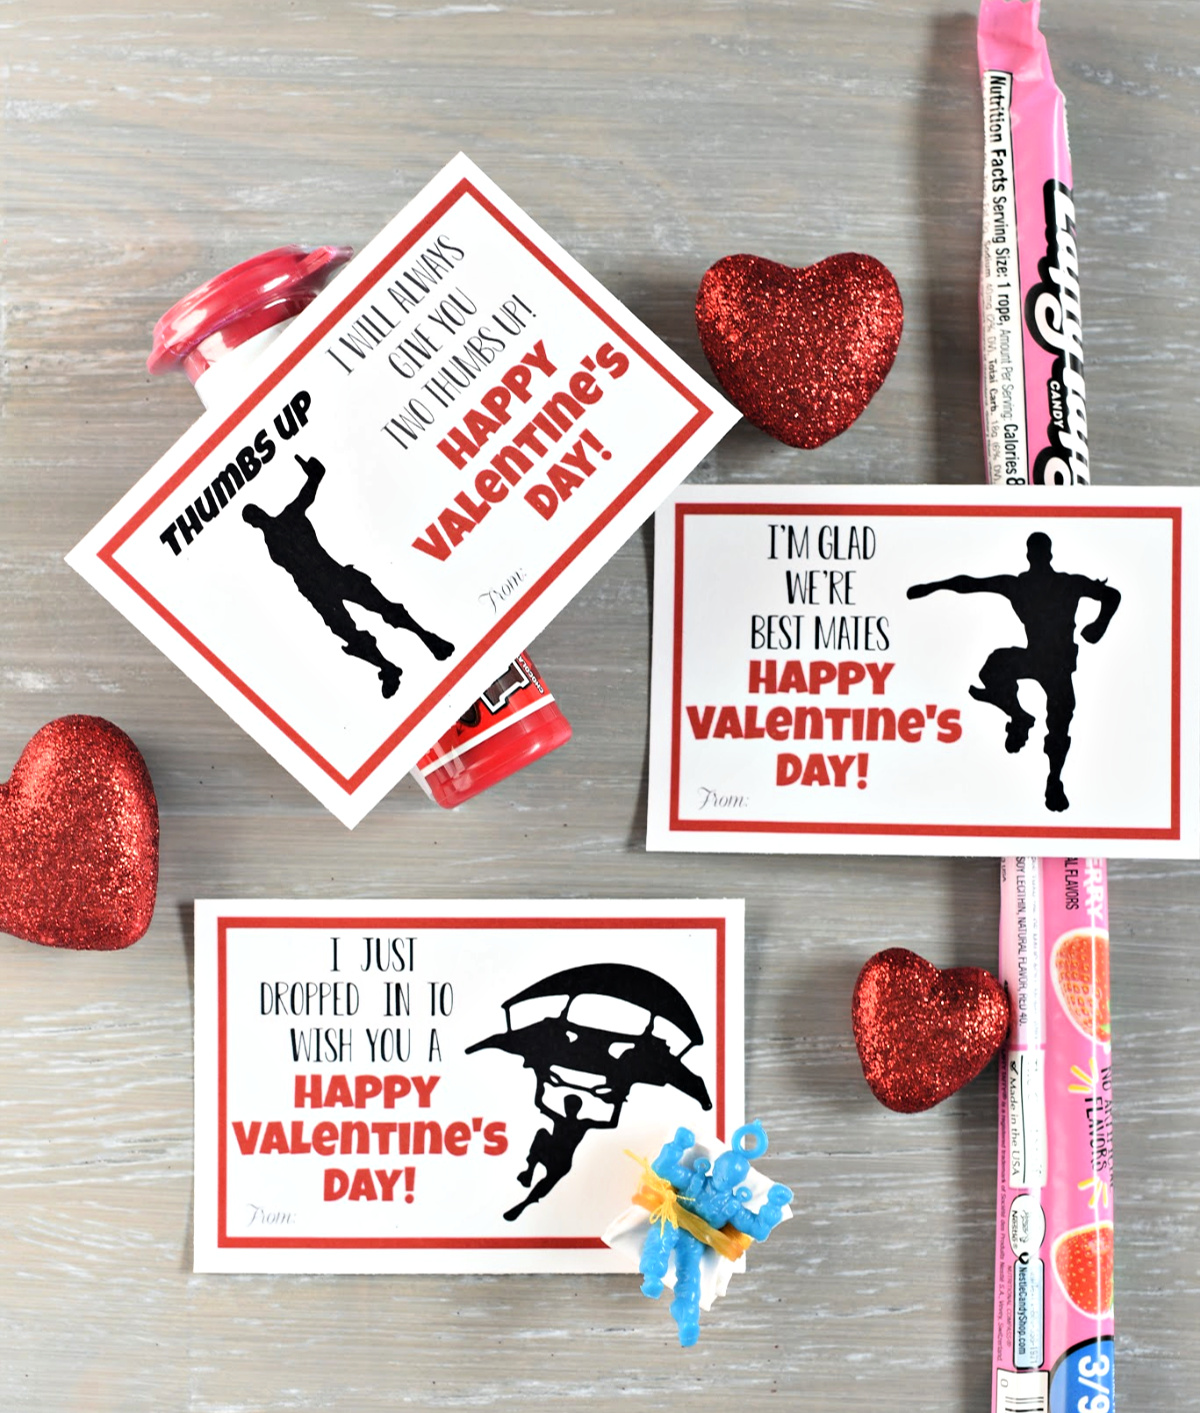 photo regarding Fortnite Printable named Fortnite Printable Valentines Enjoyable-Squared